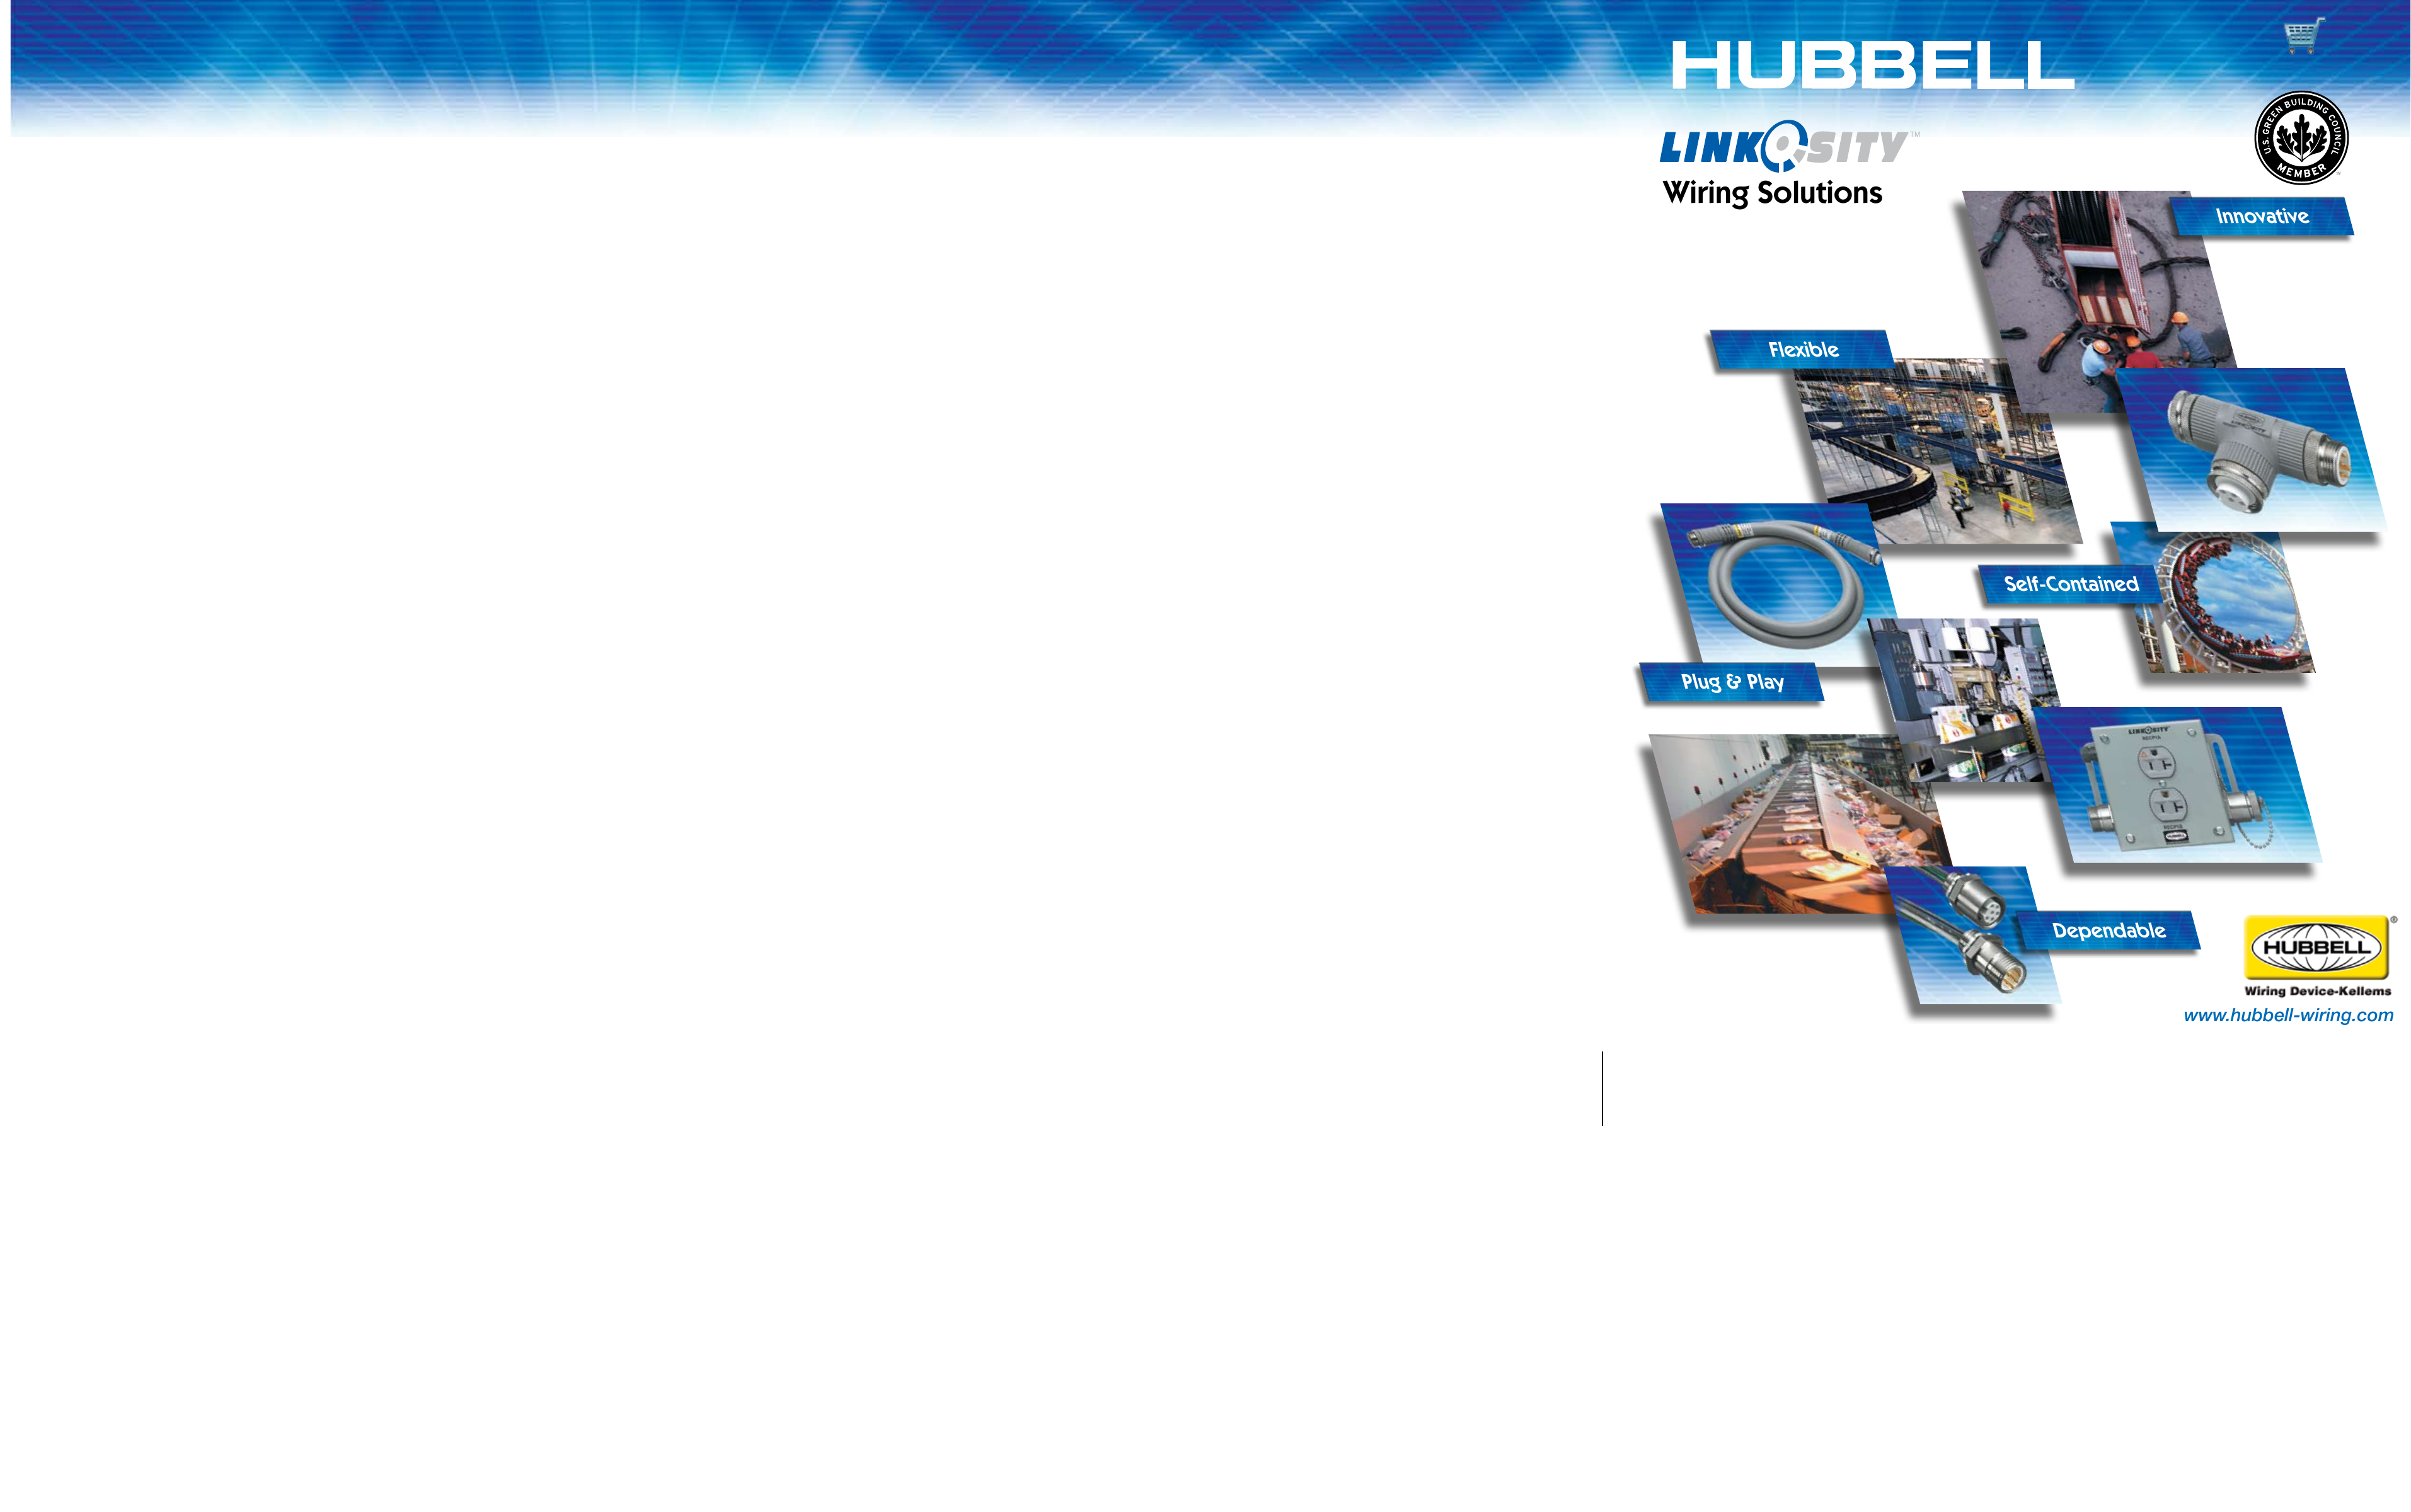 Wiring Solutions - Hubbell Wiring Device